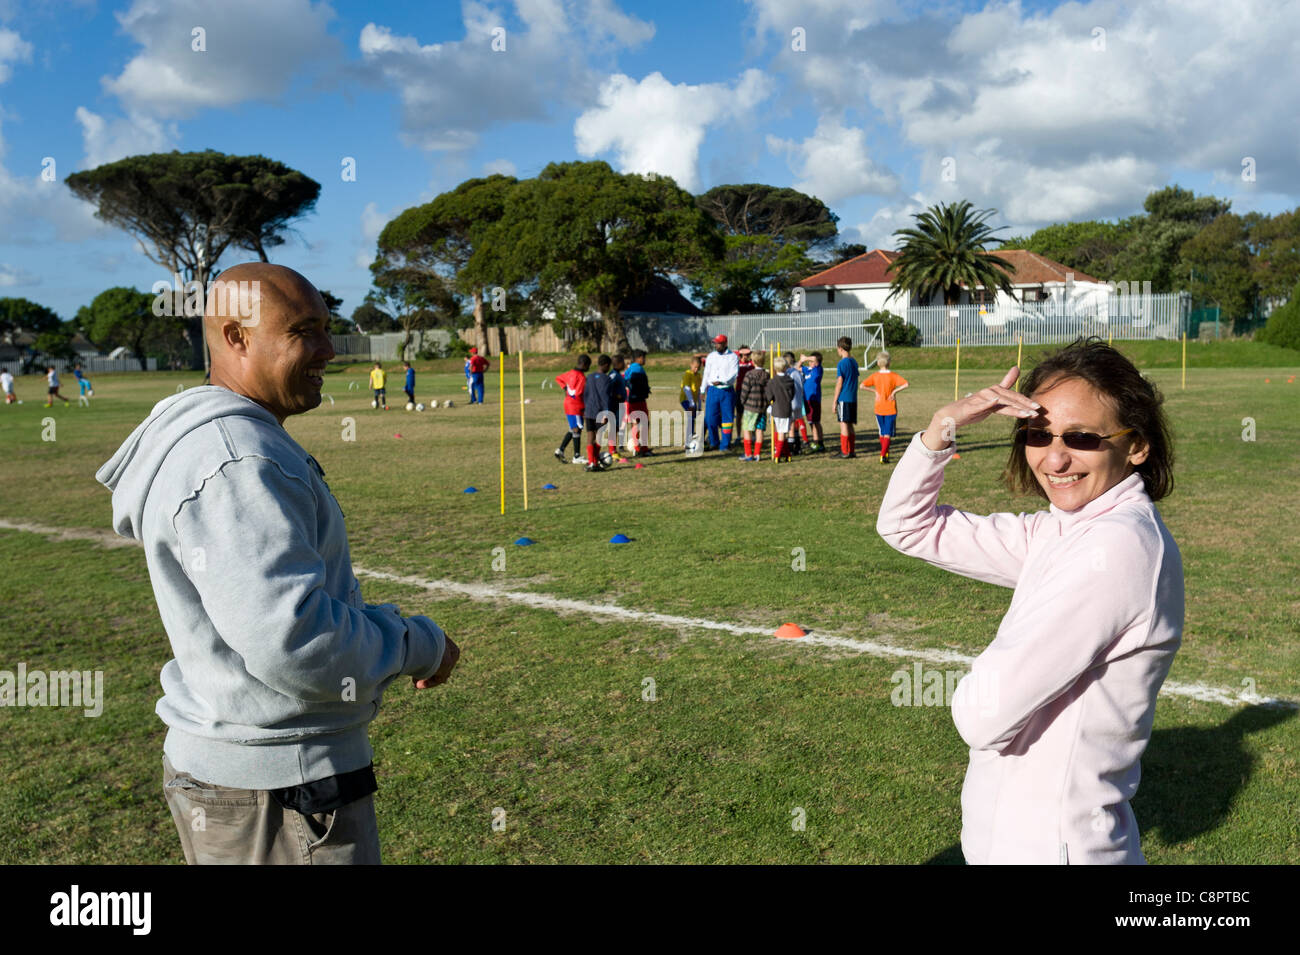 Parents watching junior football players practicing ball skills Cape Town South Africa - Stock Image